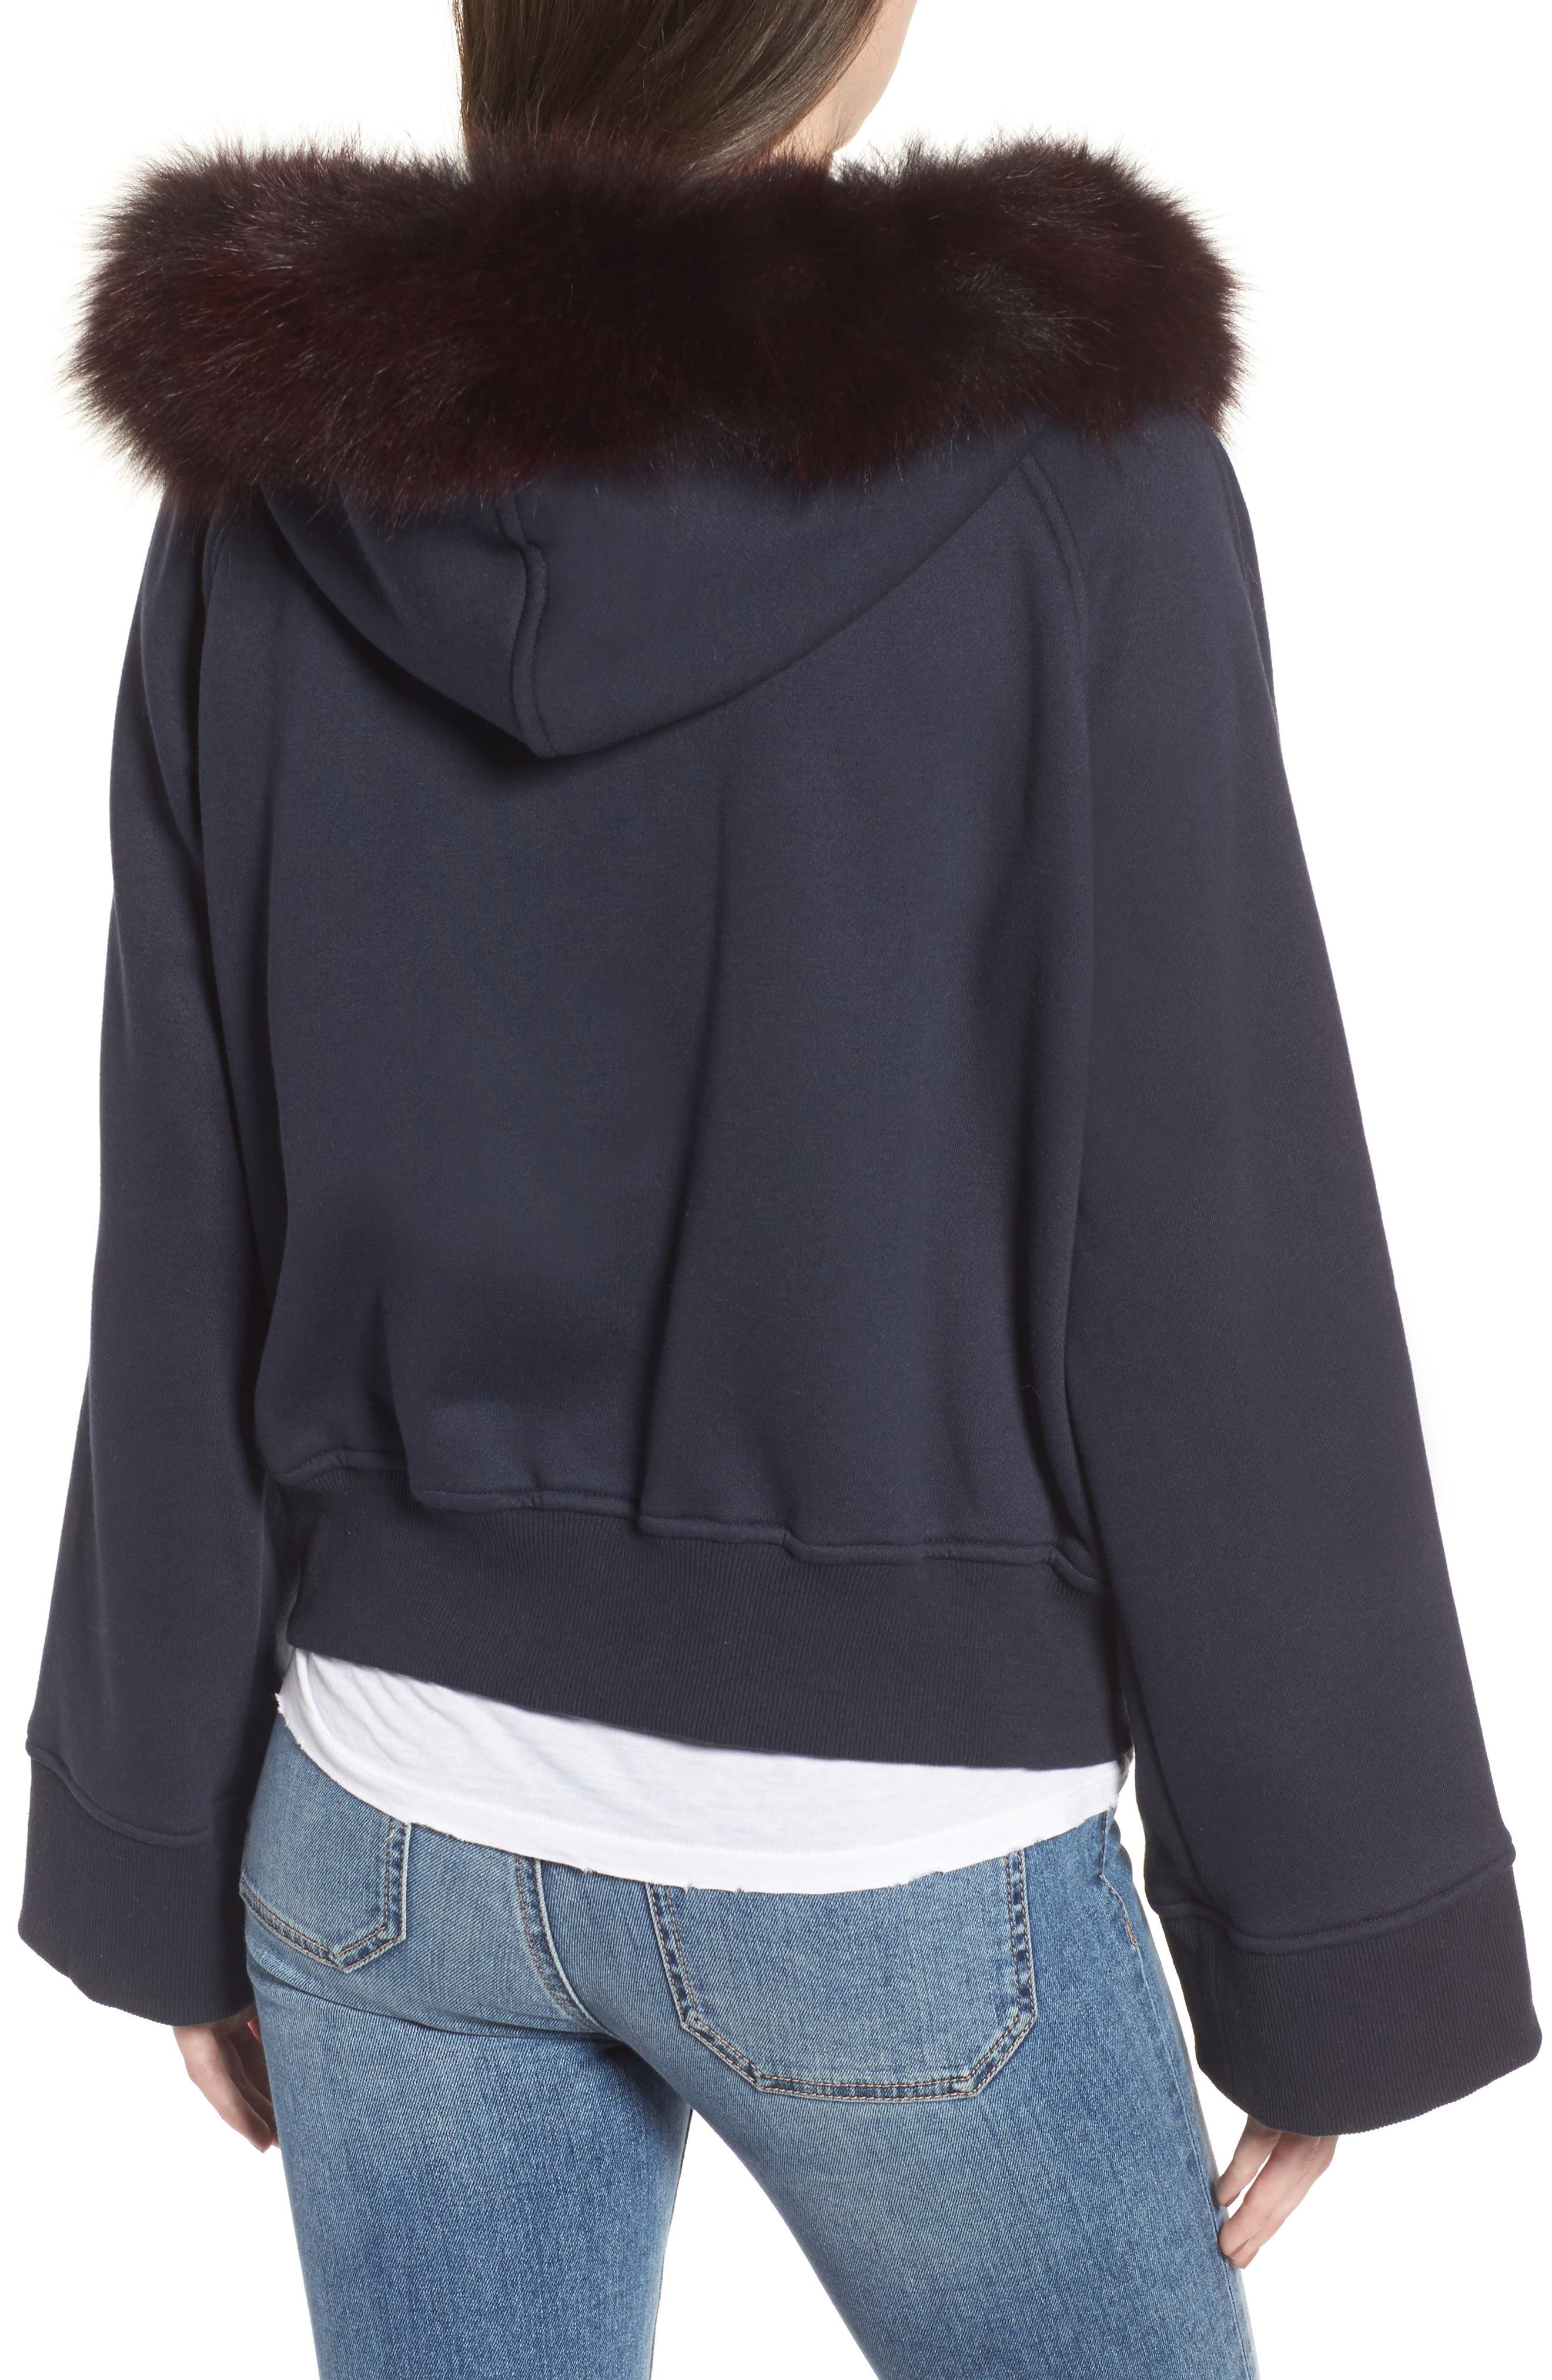 BAGATELLE.CITY The Luxe Hooded Jacket with Genuine Fox Fur Trim,                             Alternate thumbnail 5, color,